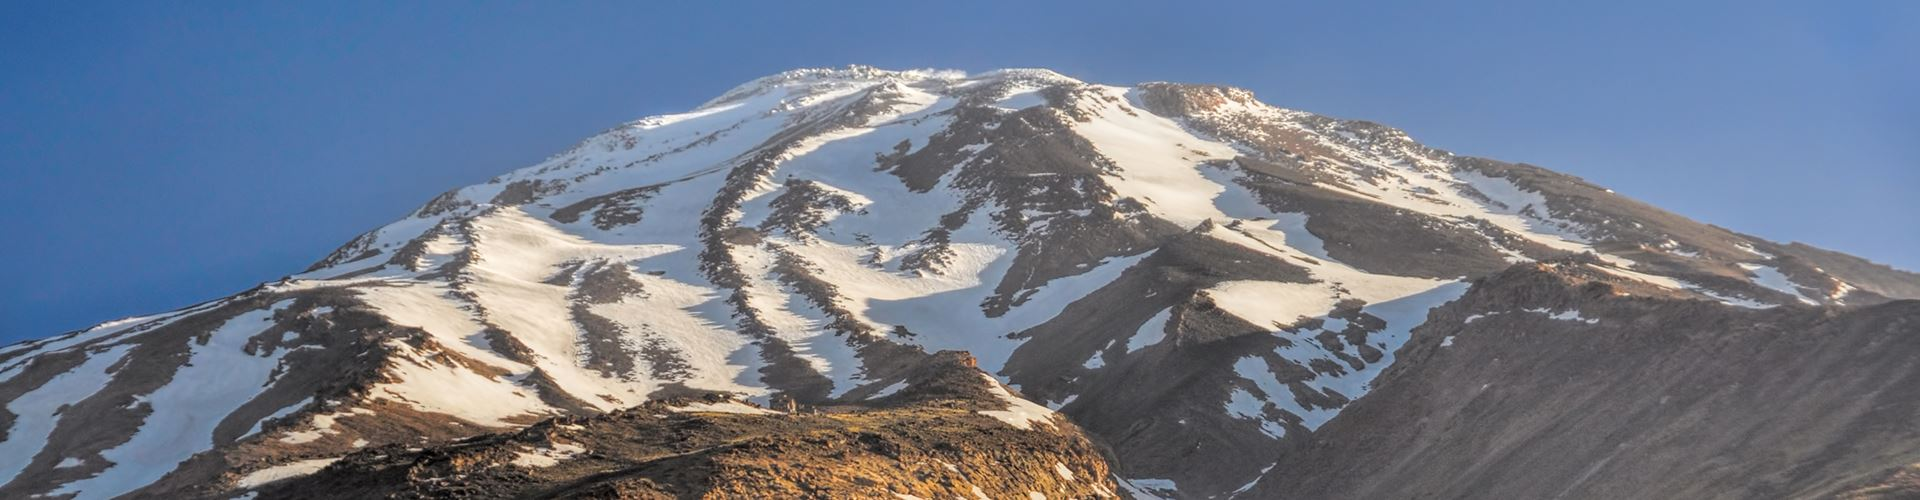 Majestic-volcano-Damavand,-highest-peak-in-Iran.jpg